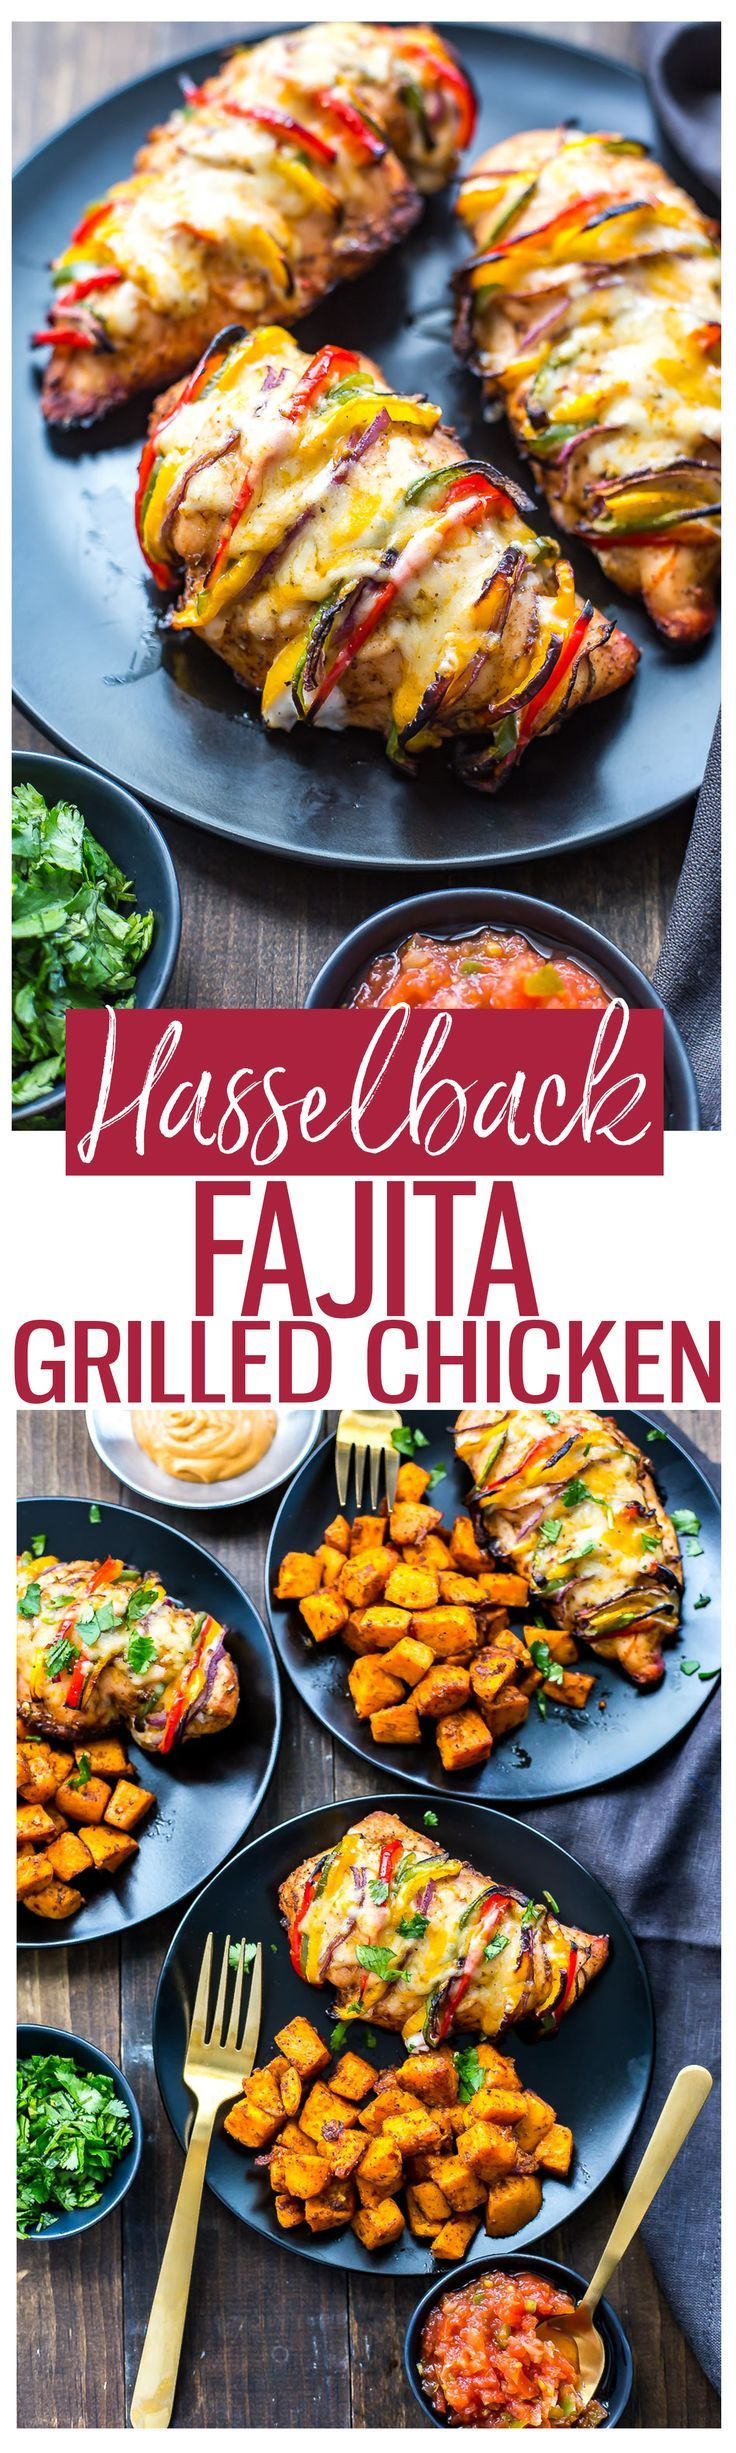 Grilled Hassleback Fajita Stuffed Chicken | Stuffed with bell peppers & red onions | Gluten Free | Low Carb (Creative Baking Low Carb)